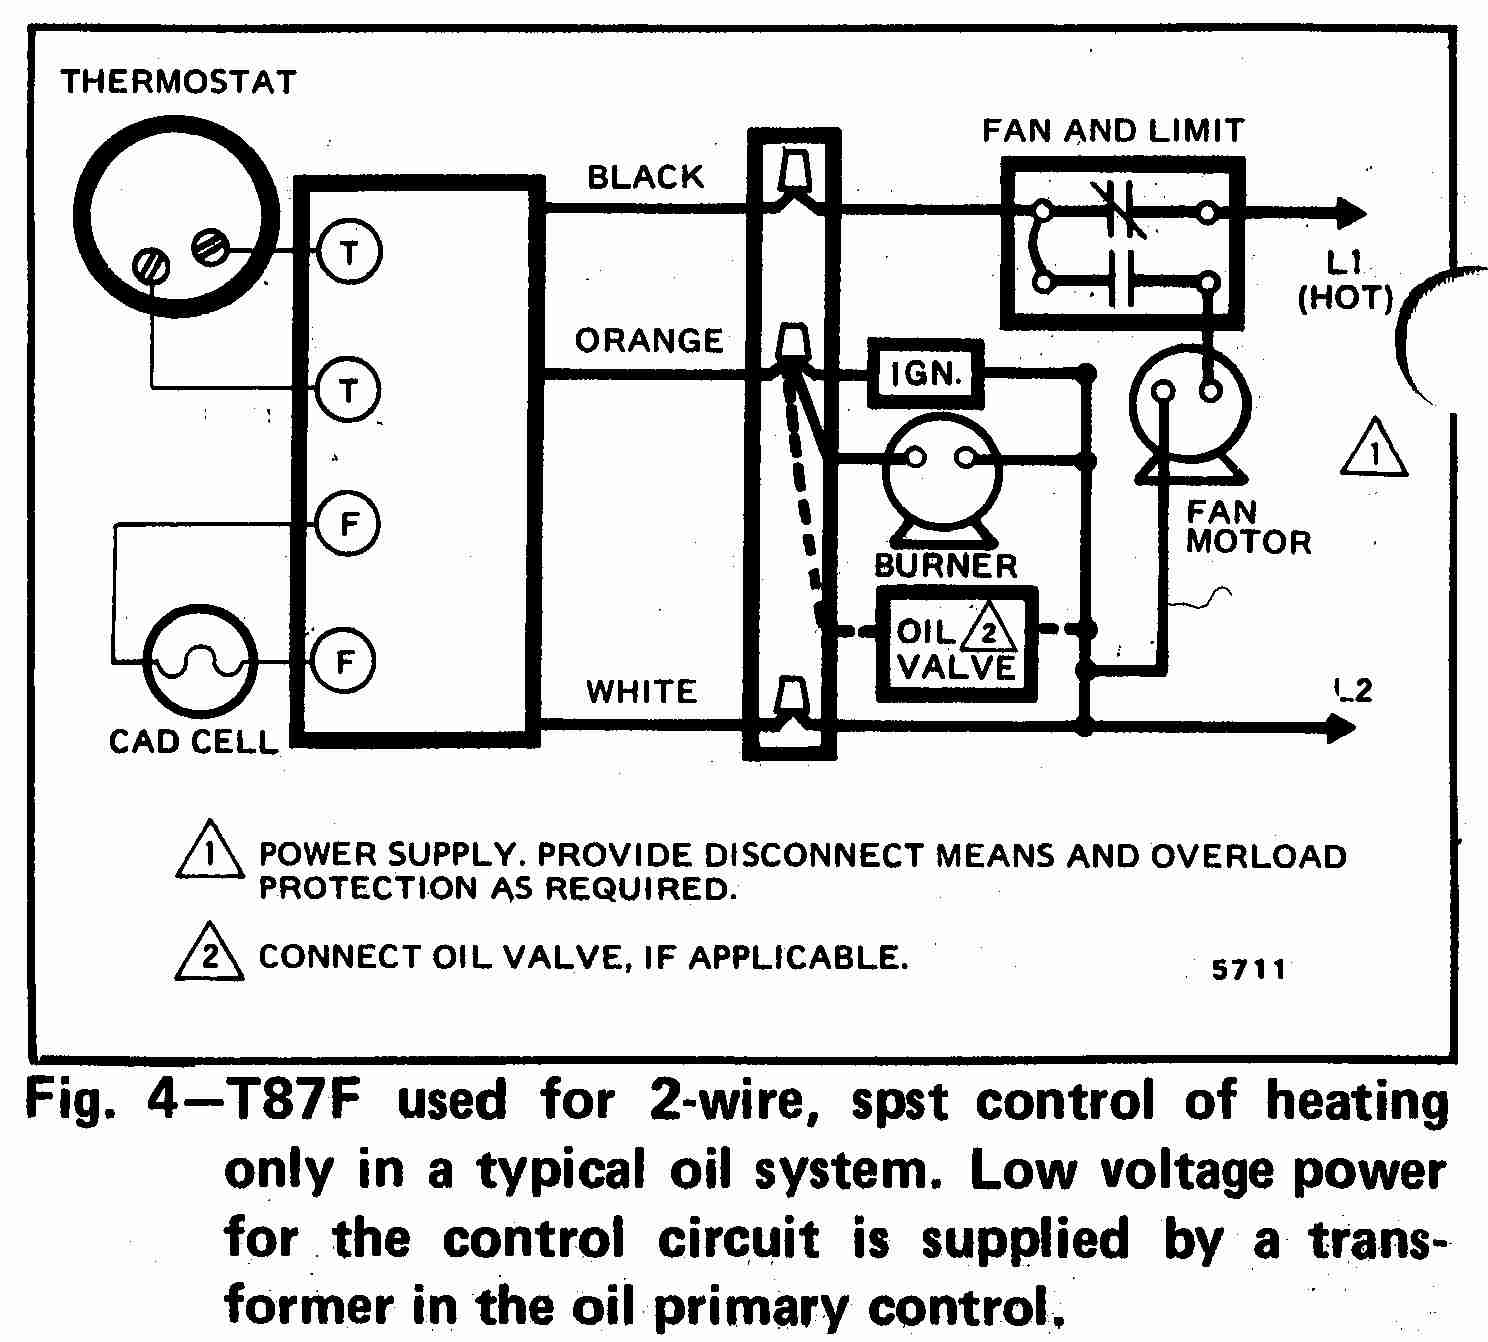 TT_T87F_0002_2W_DJF room thermostat wiring diagrams for hvac systems  at love-stories.co